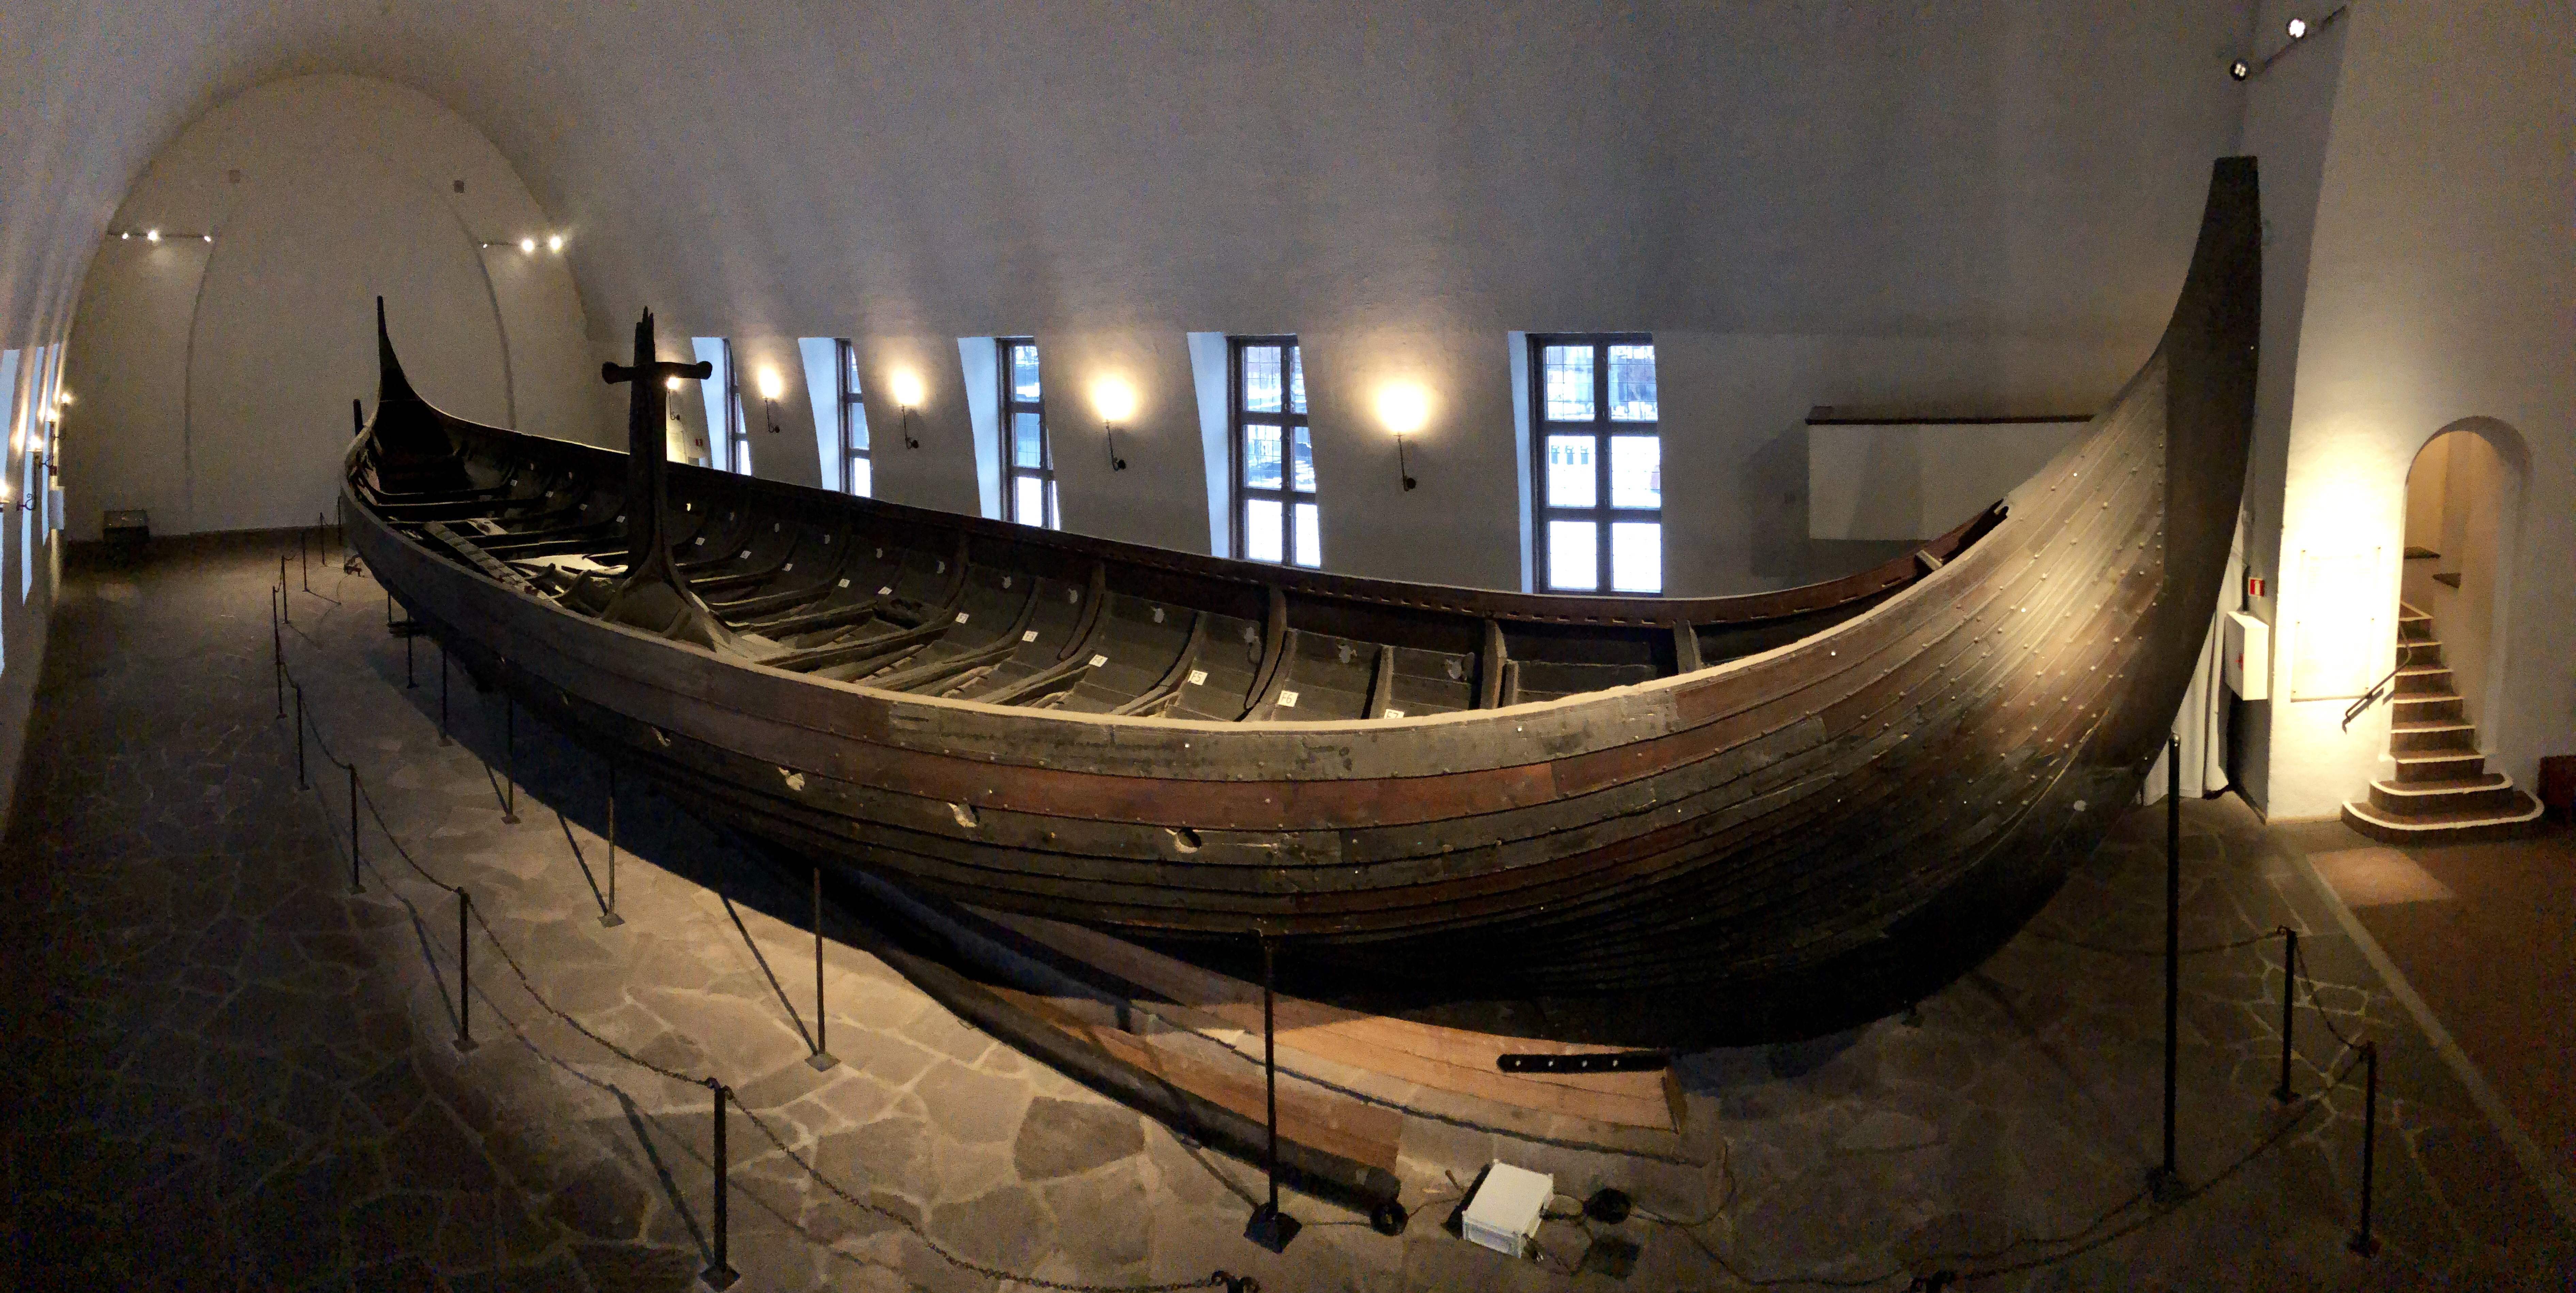 Photo of the Gokstad ship from above